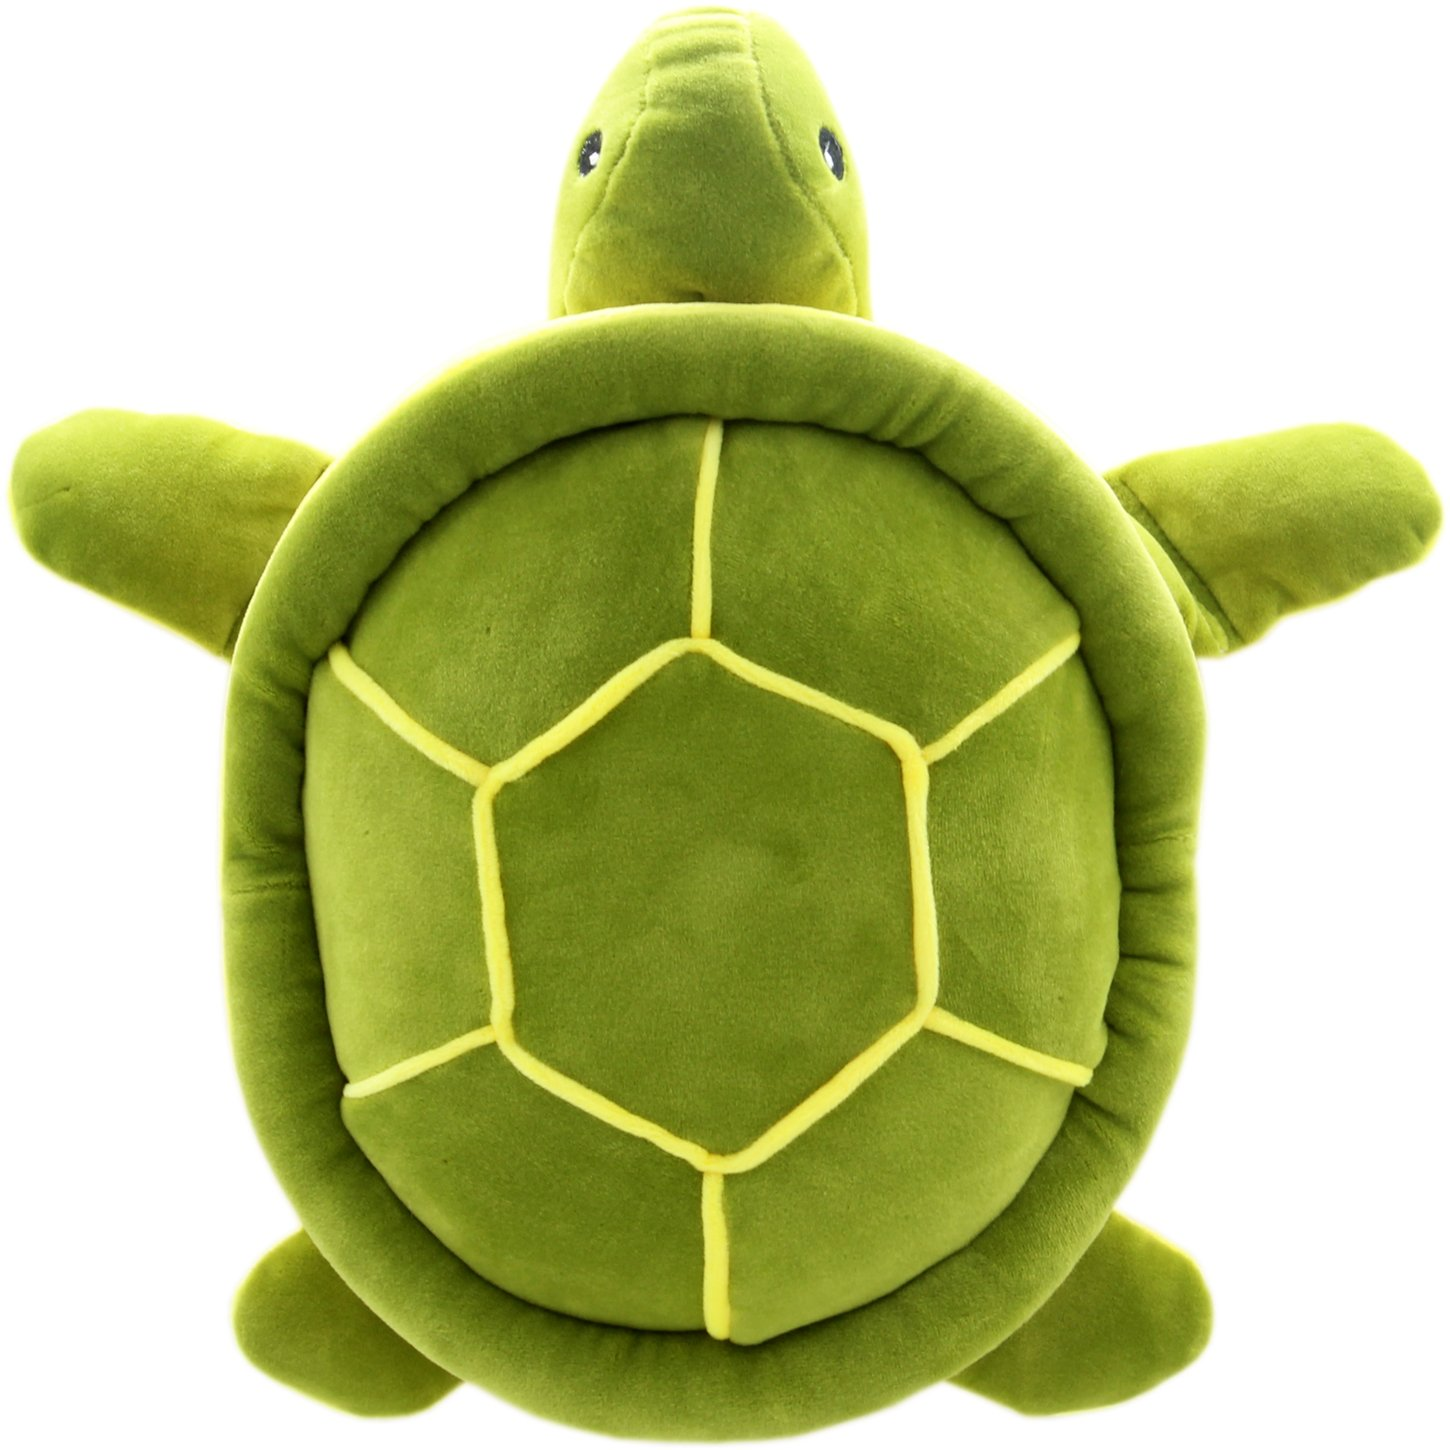 Jesonn Realistic Soft Plush Baby Pillow Stuffed Marine Animals Toy Turtle for Kids' Gifts,Green,12.6'' or 32CM,1PC